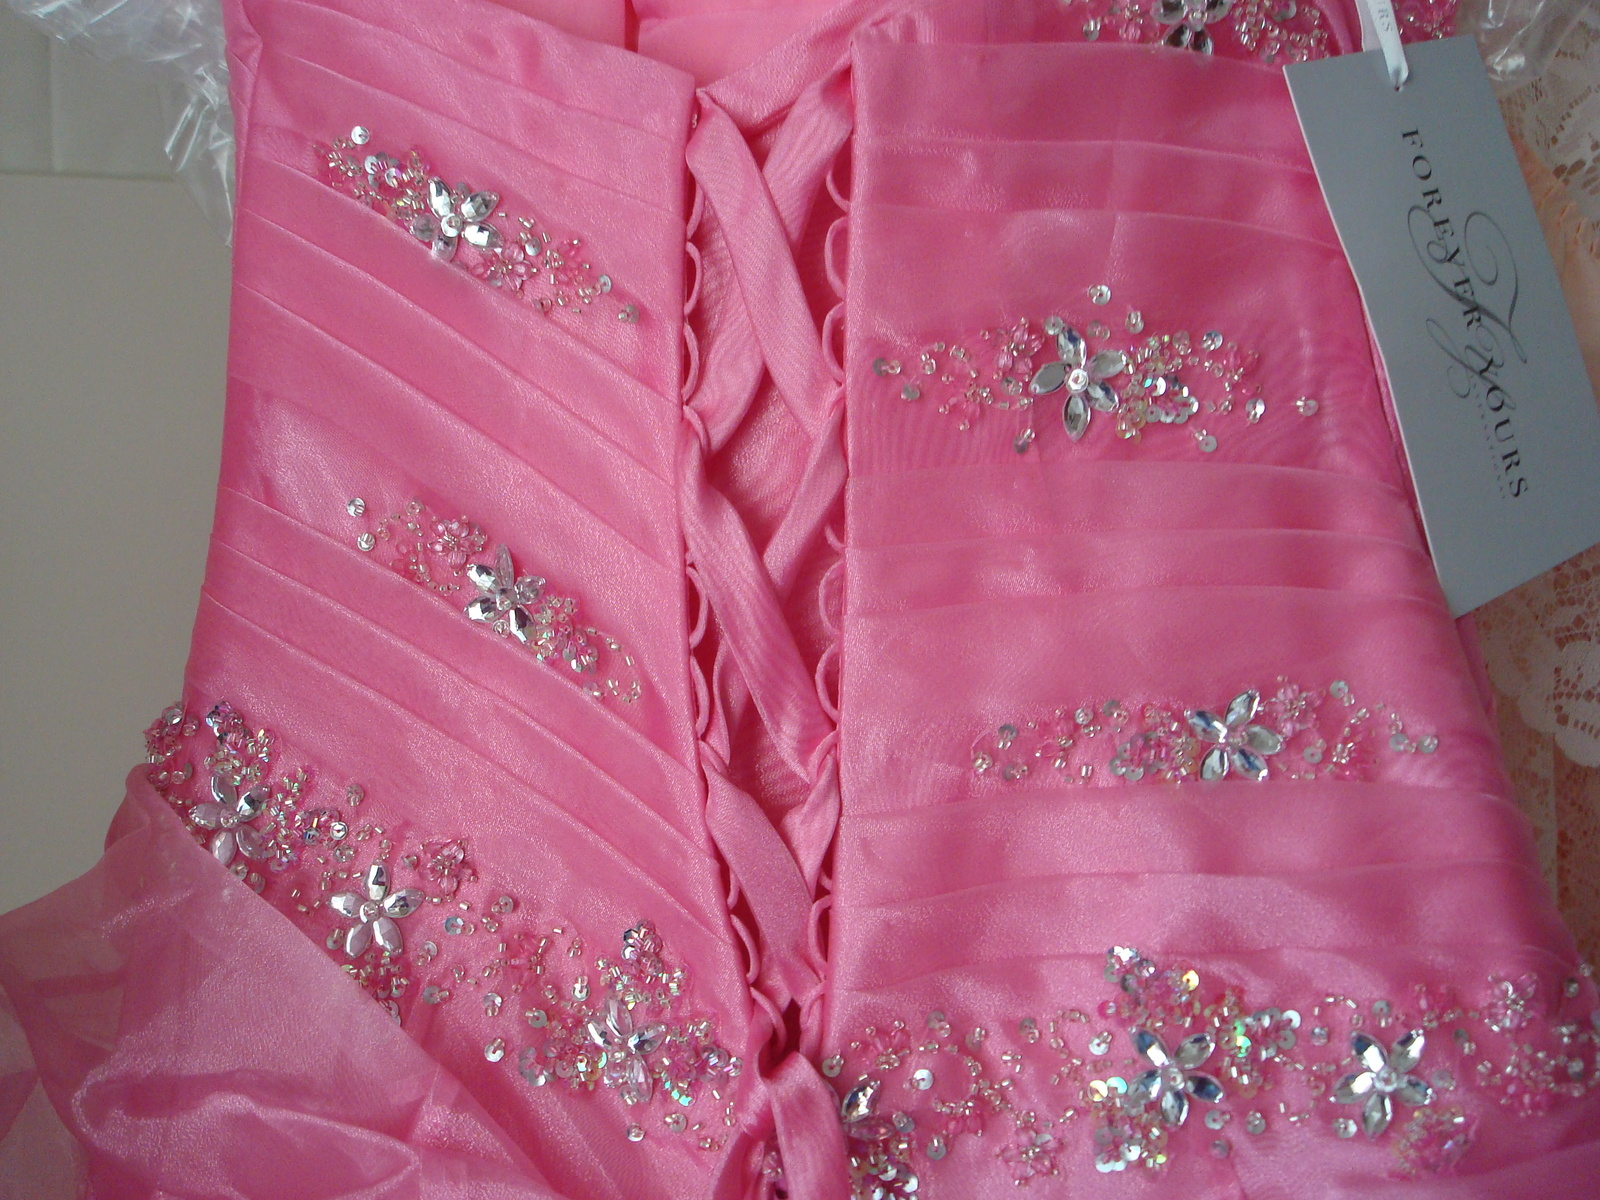 Pink Prom Dress Size 6 by Forever Yours MSRP $629 NWT  image 8